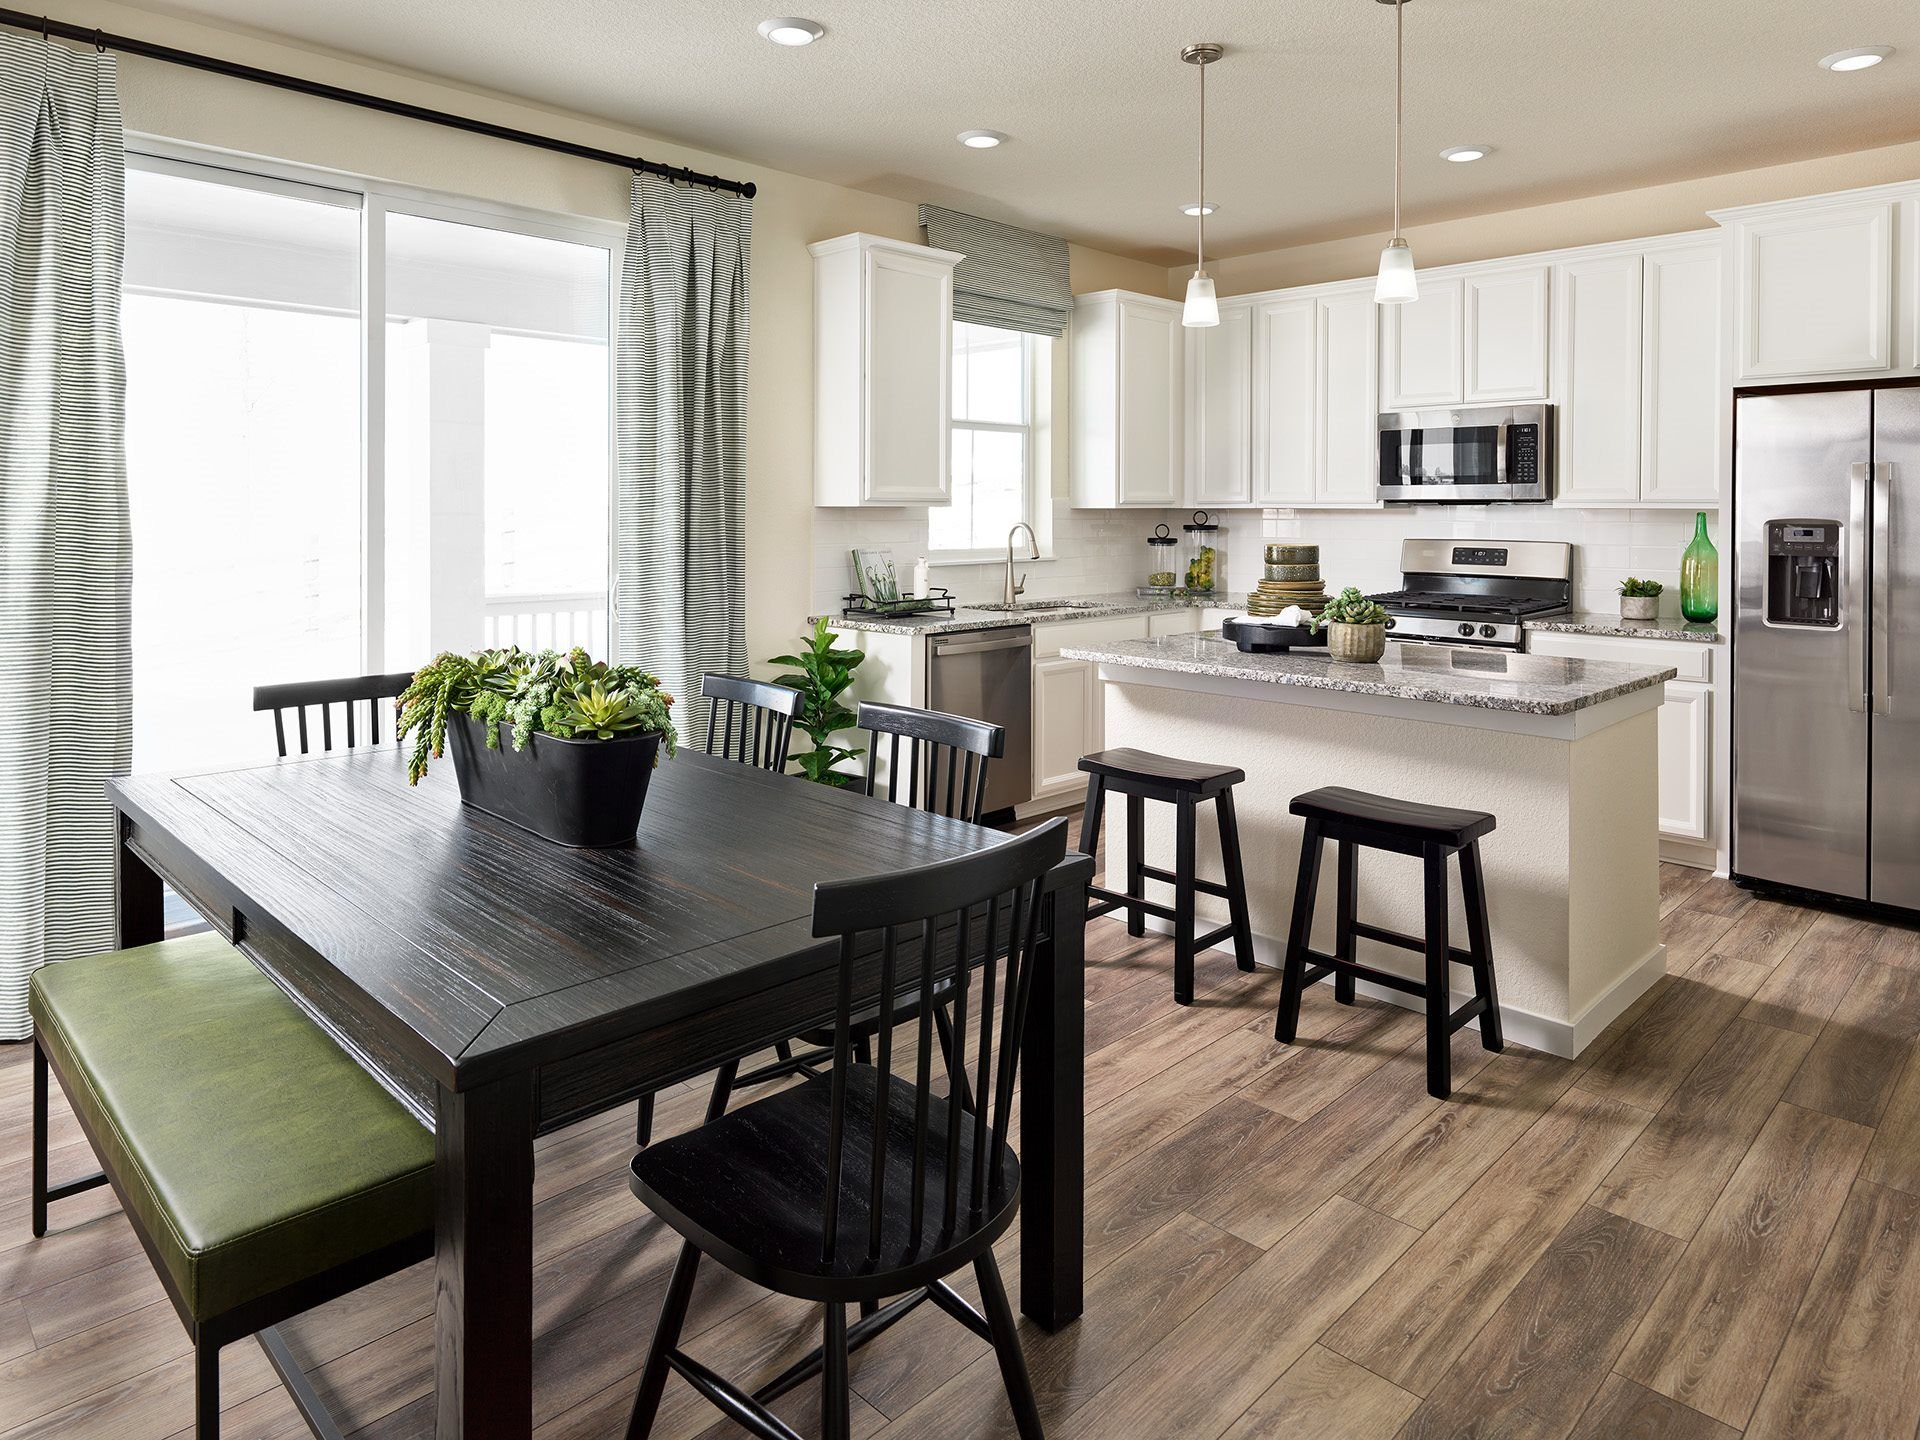 Kitchen featured in the Tabor By Lennar in Denver, CO